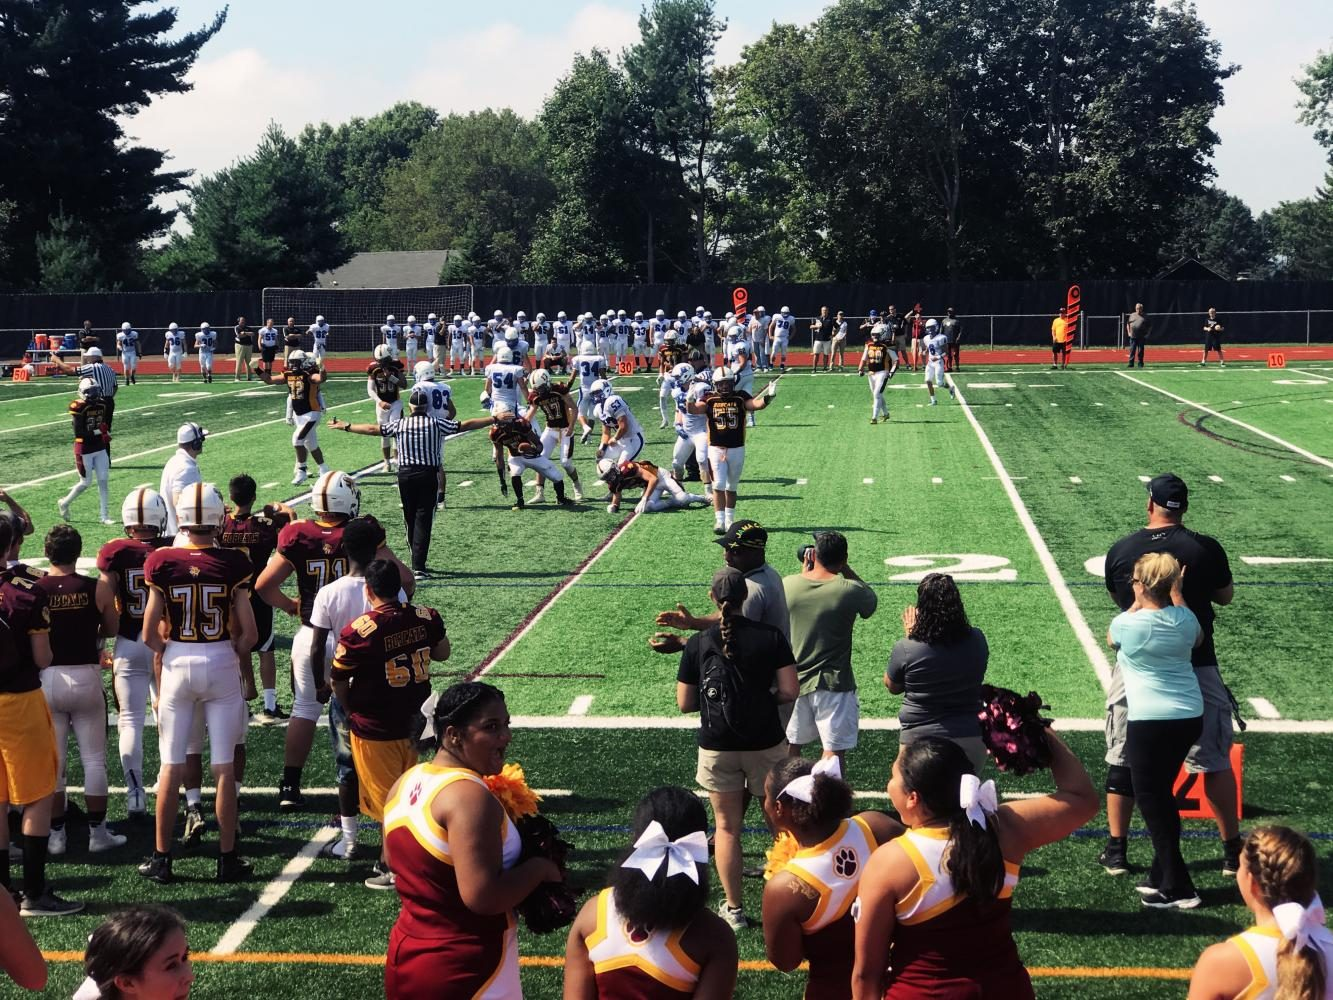 South Windsor defeats rival Glastonbury in home opener game